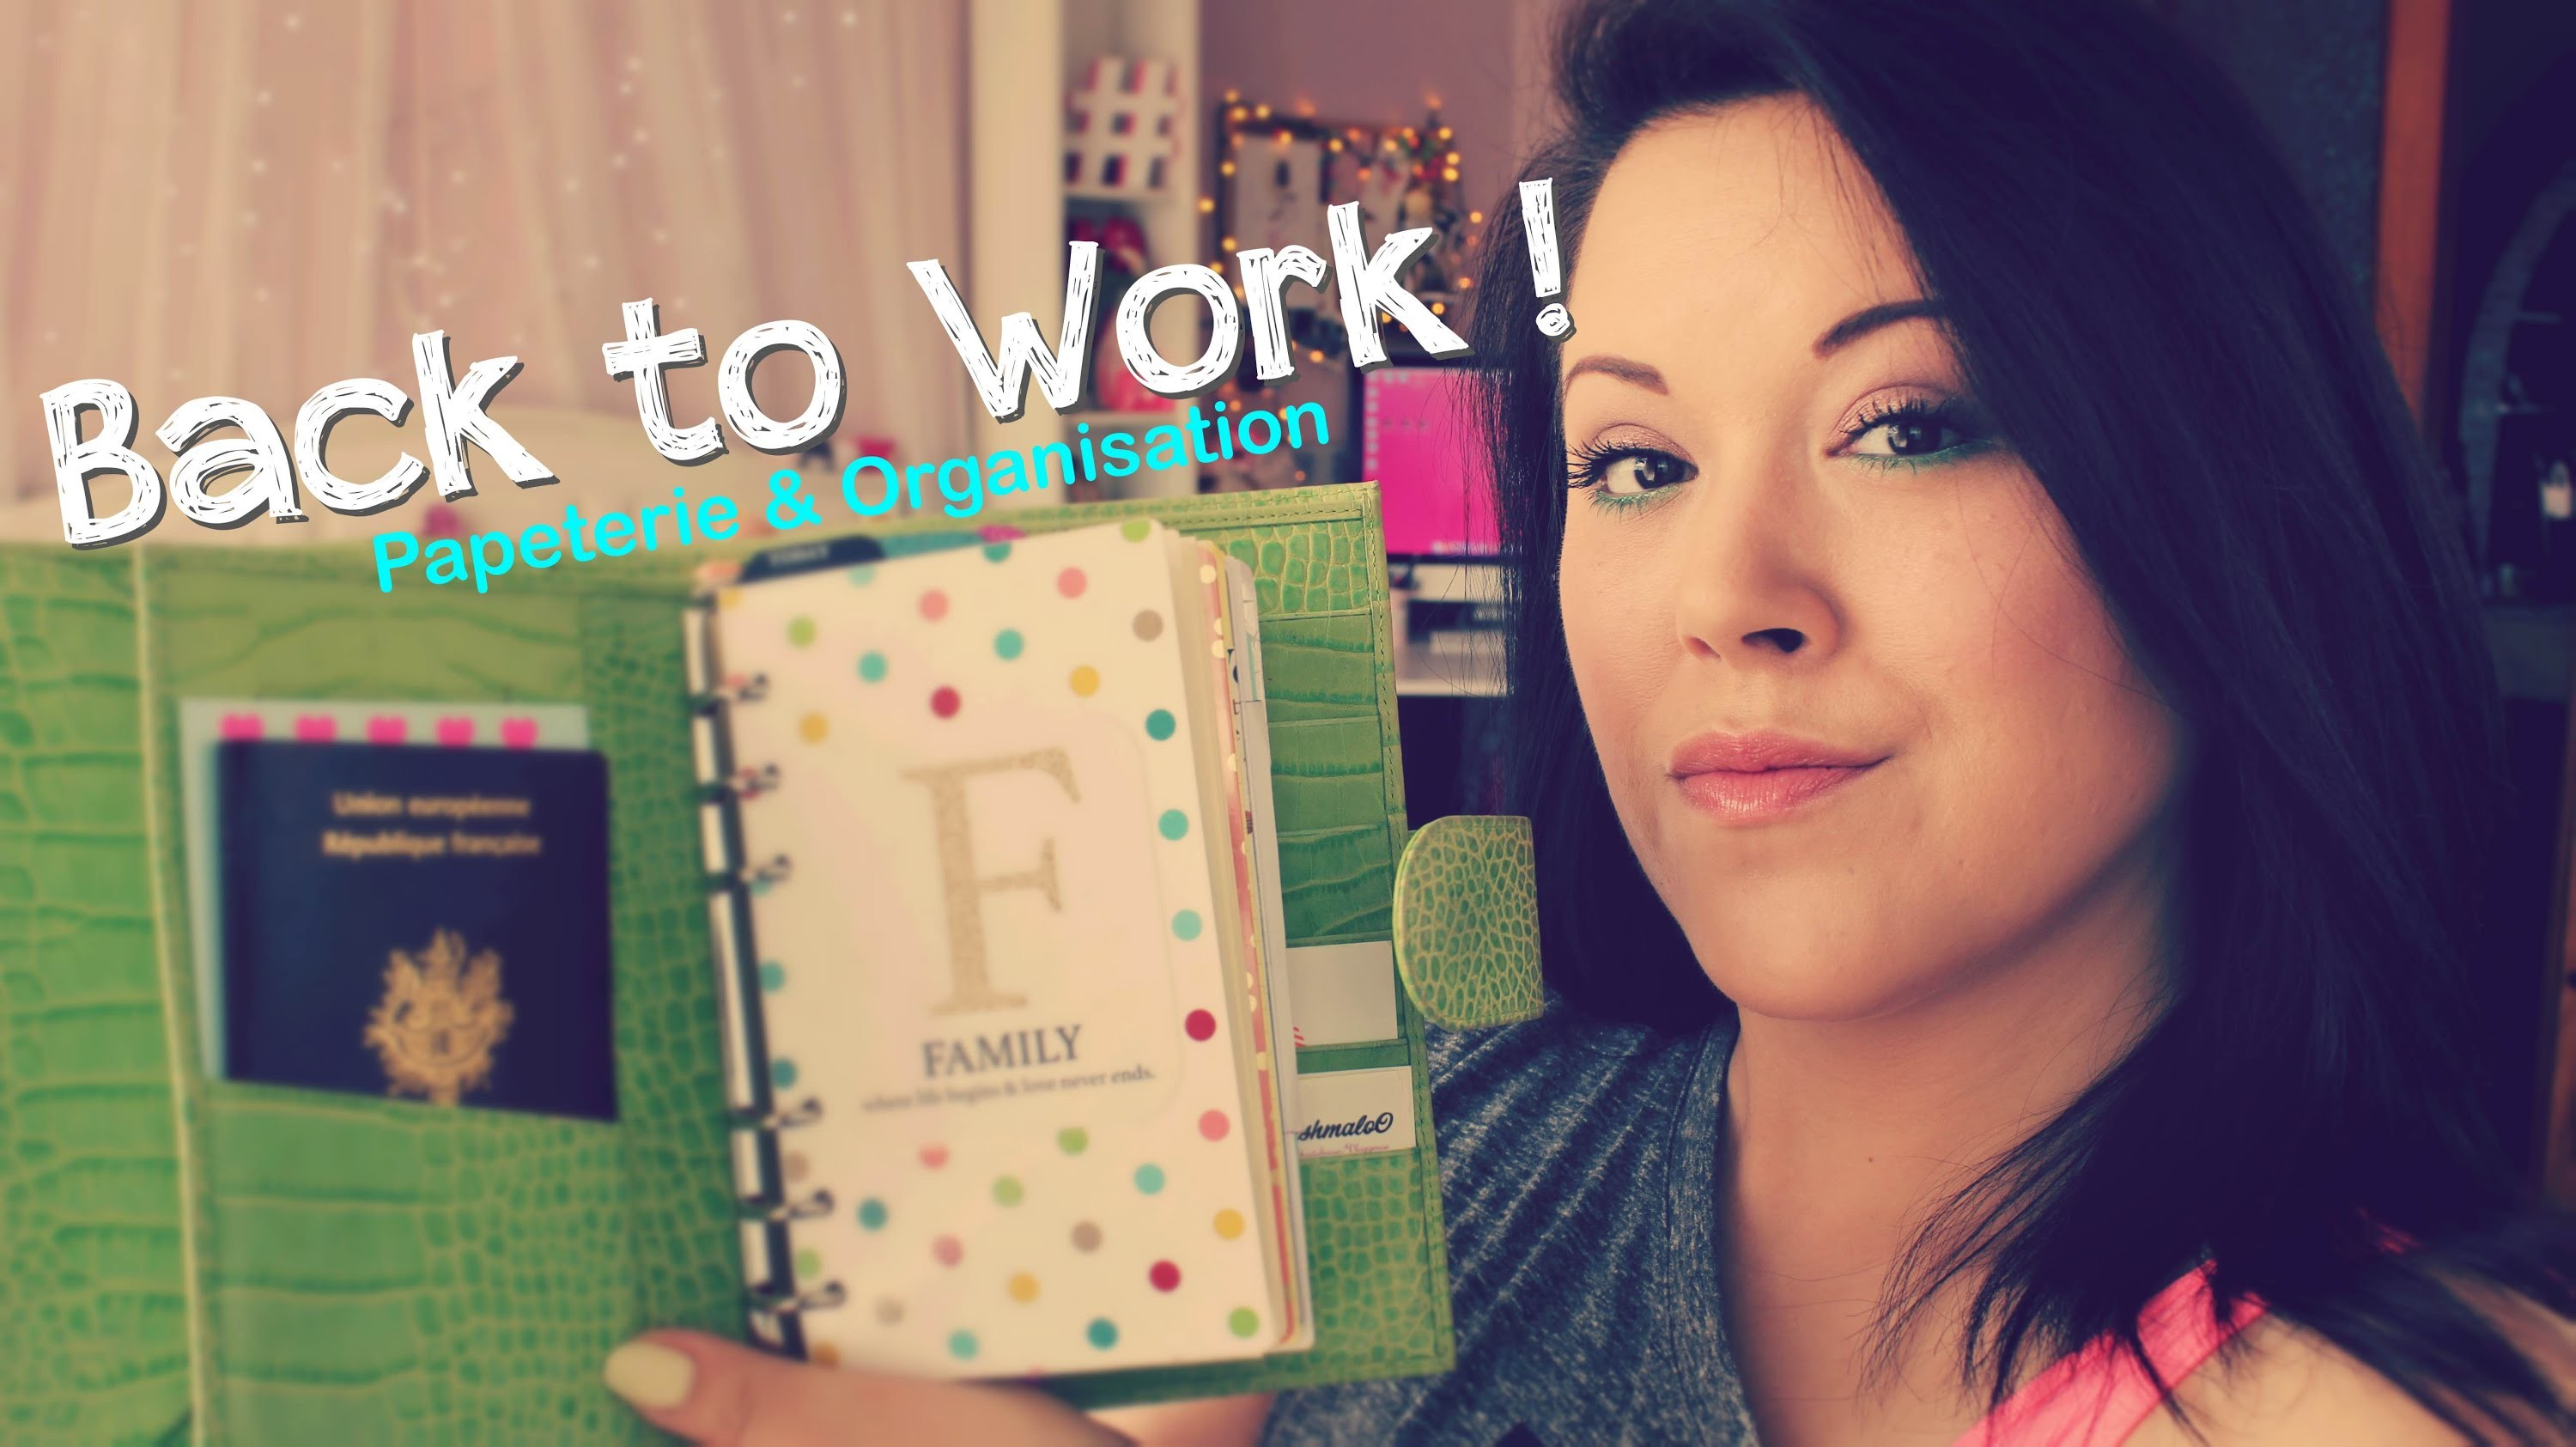 BACK TO WORK : Papeterie & Organisation